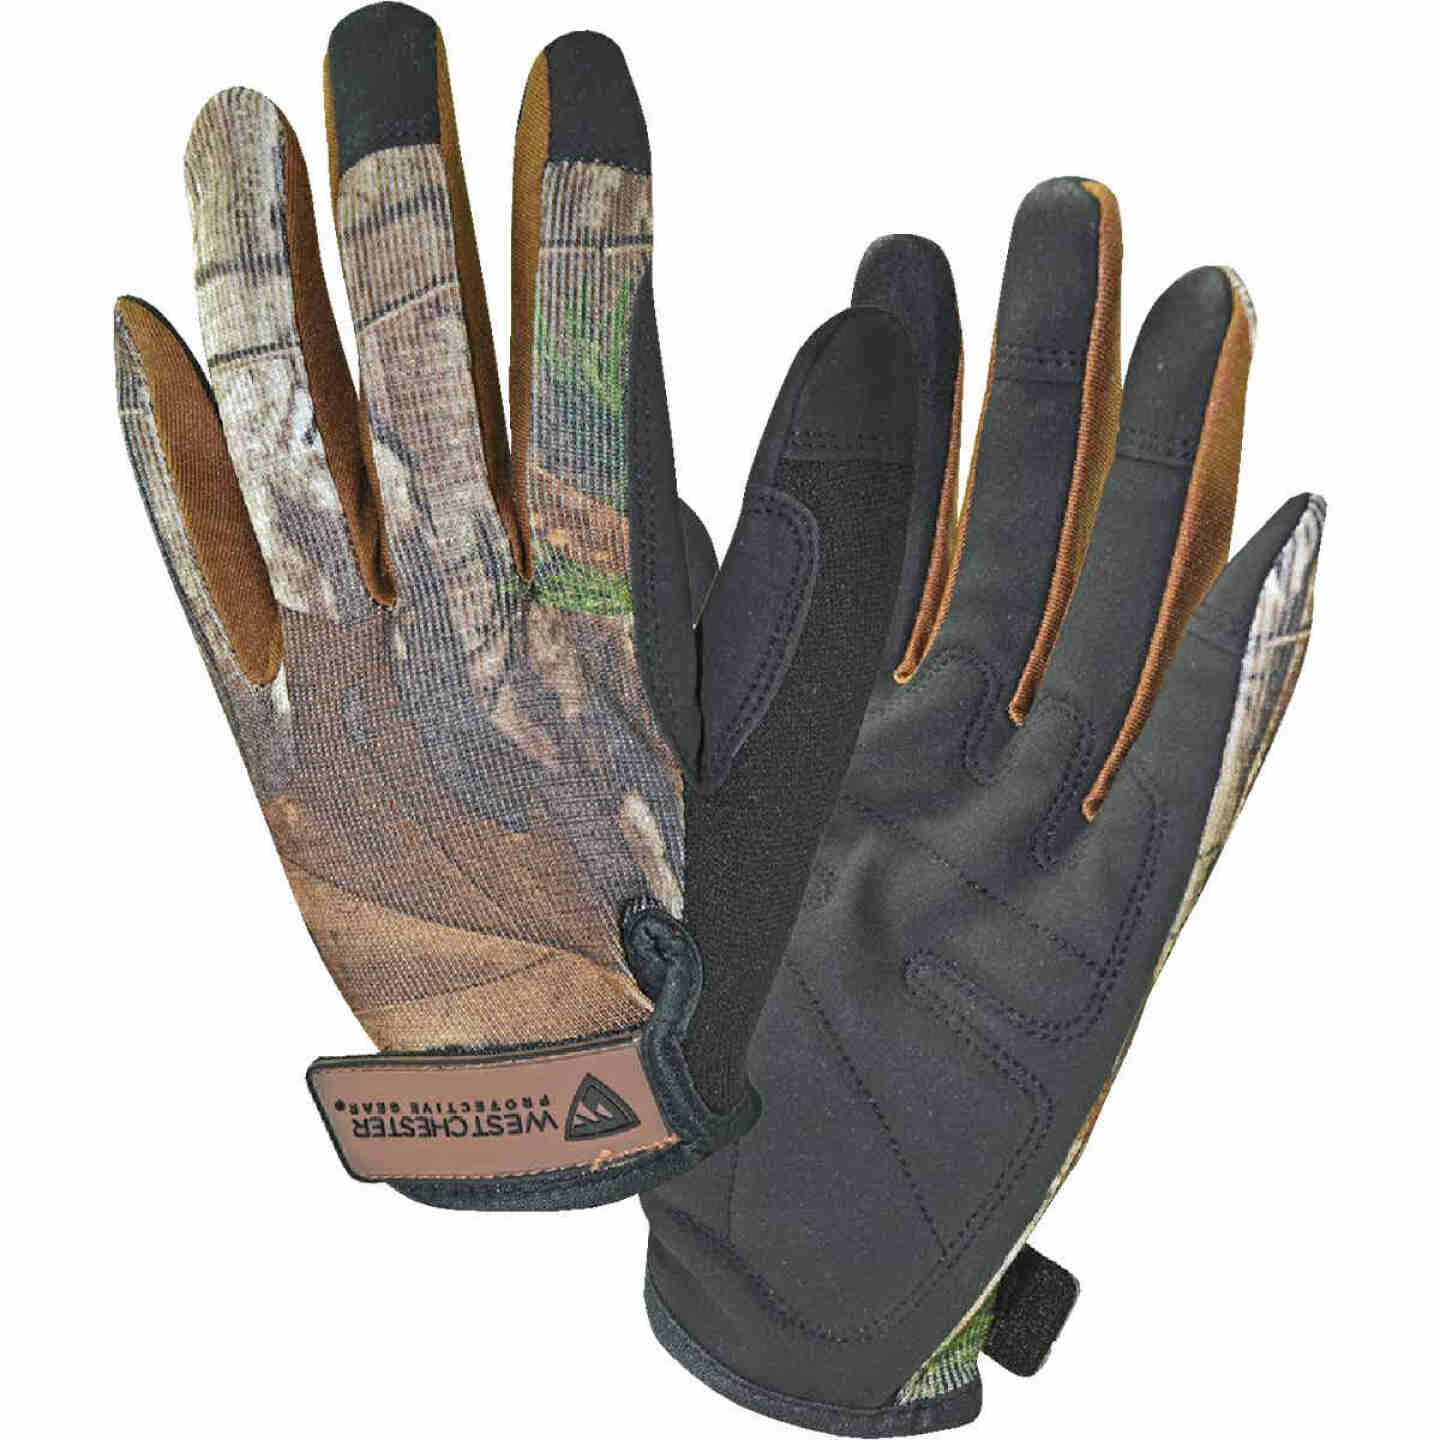 West Chester Protective Gear Realtree Xtra Men's XL Synthetic Leather High Dexterity Work Glove Image 1